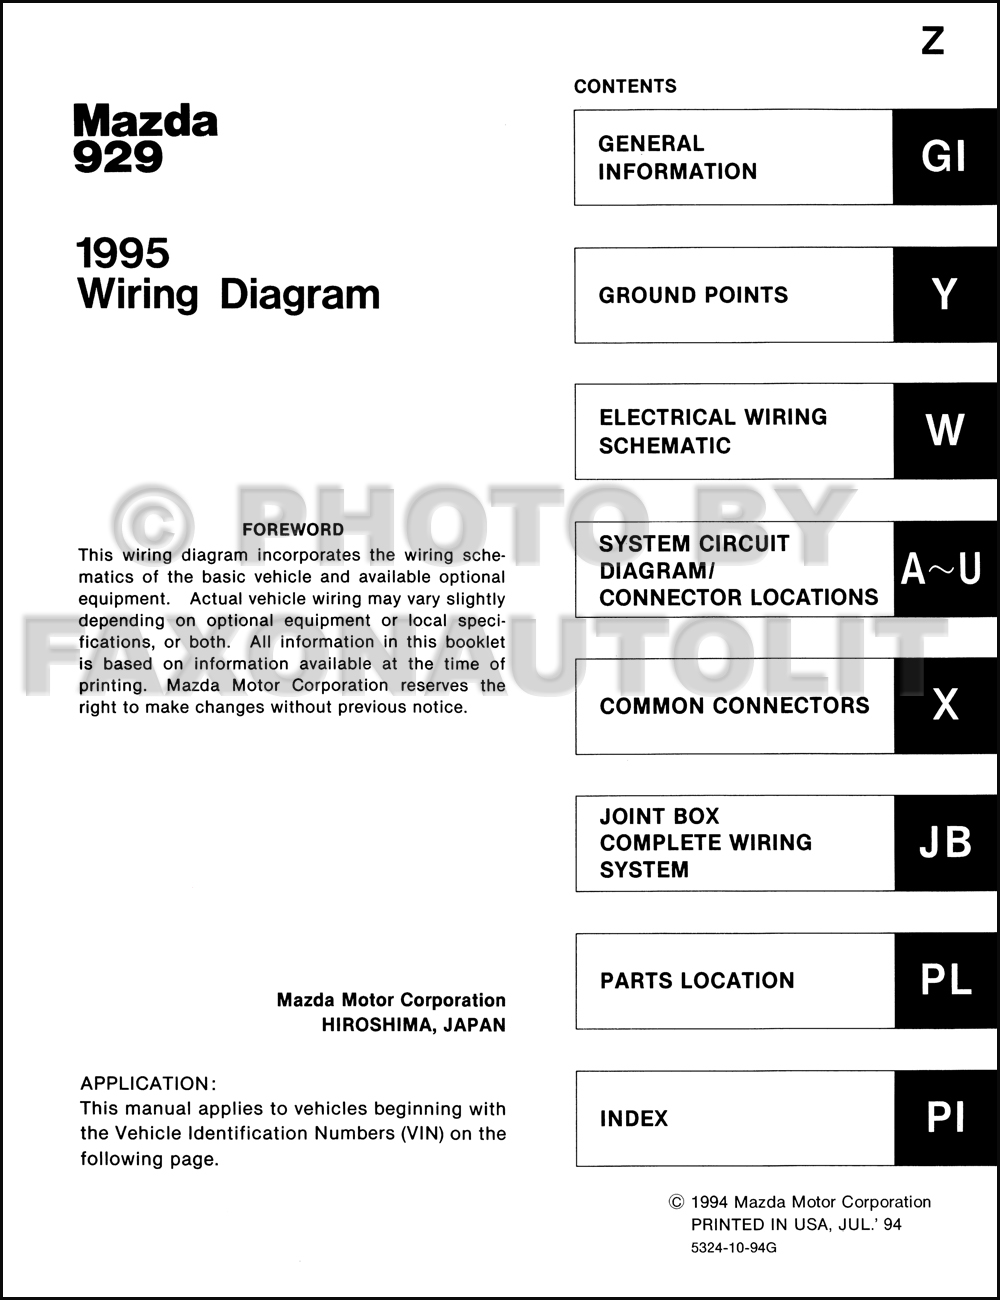 Mazda 929 Radio Wiring Diagram Schematics 95 Isuzu 1995 Manual Original Suzuki Vitara